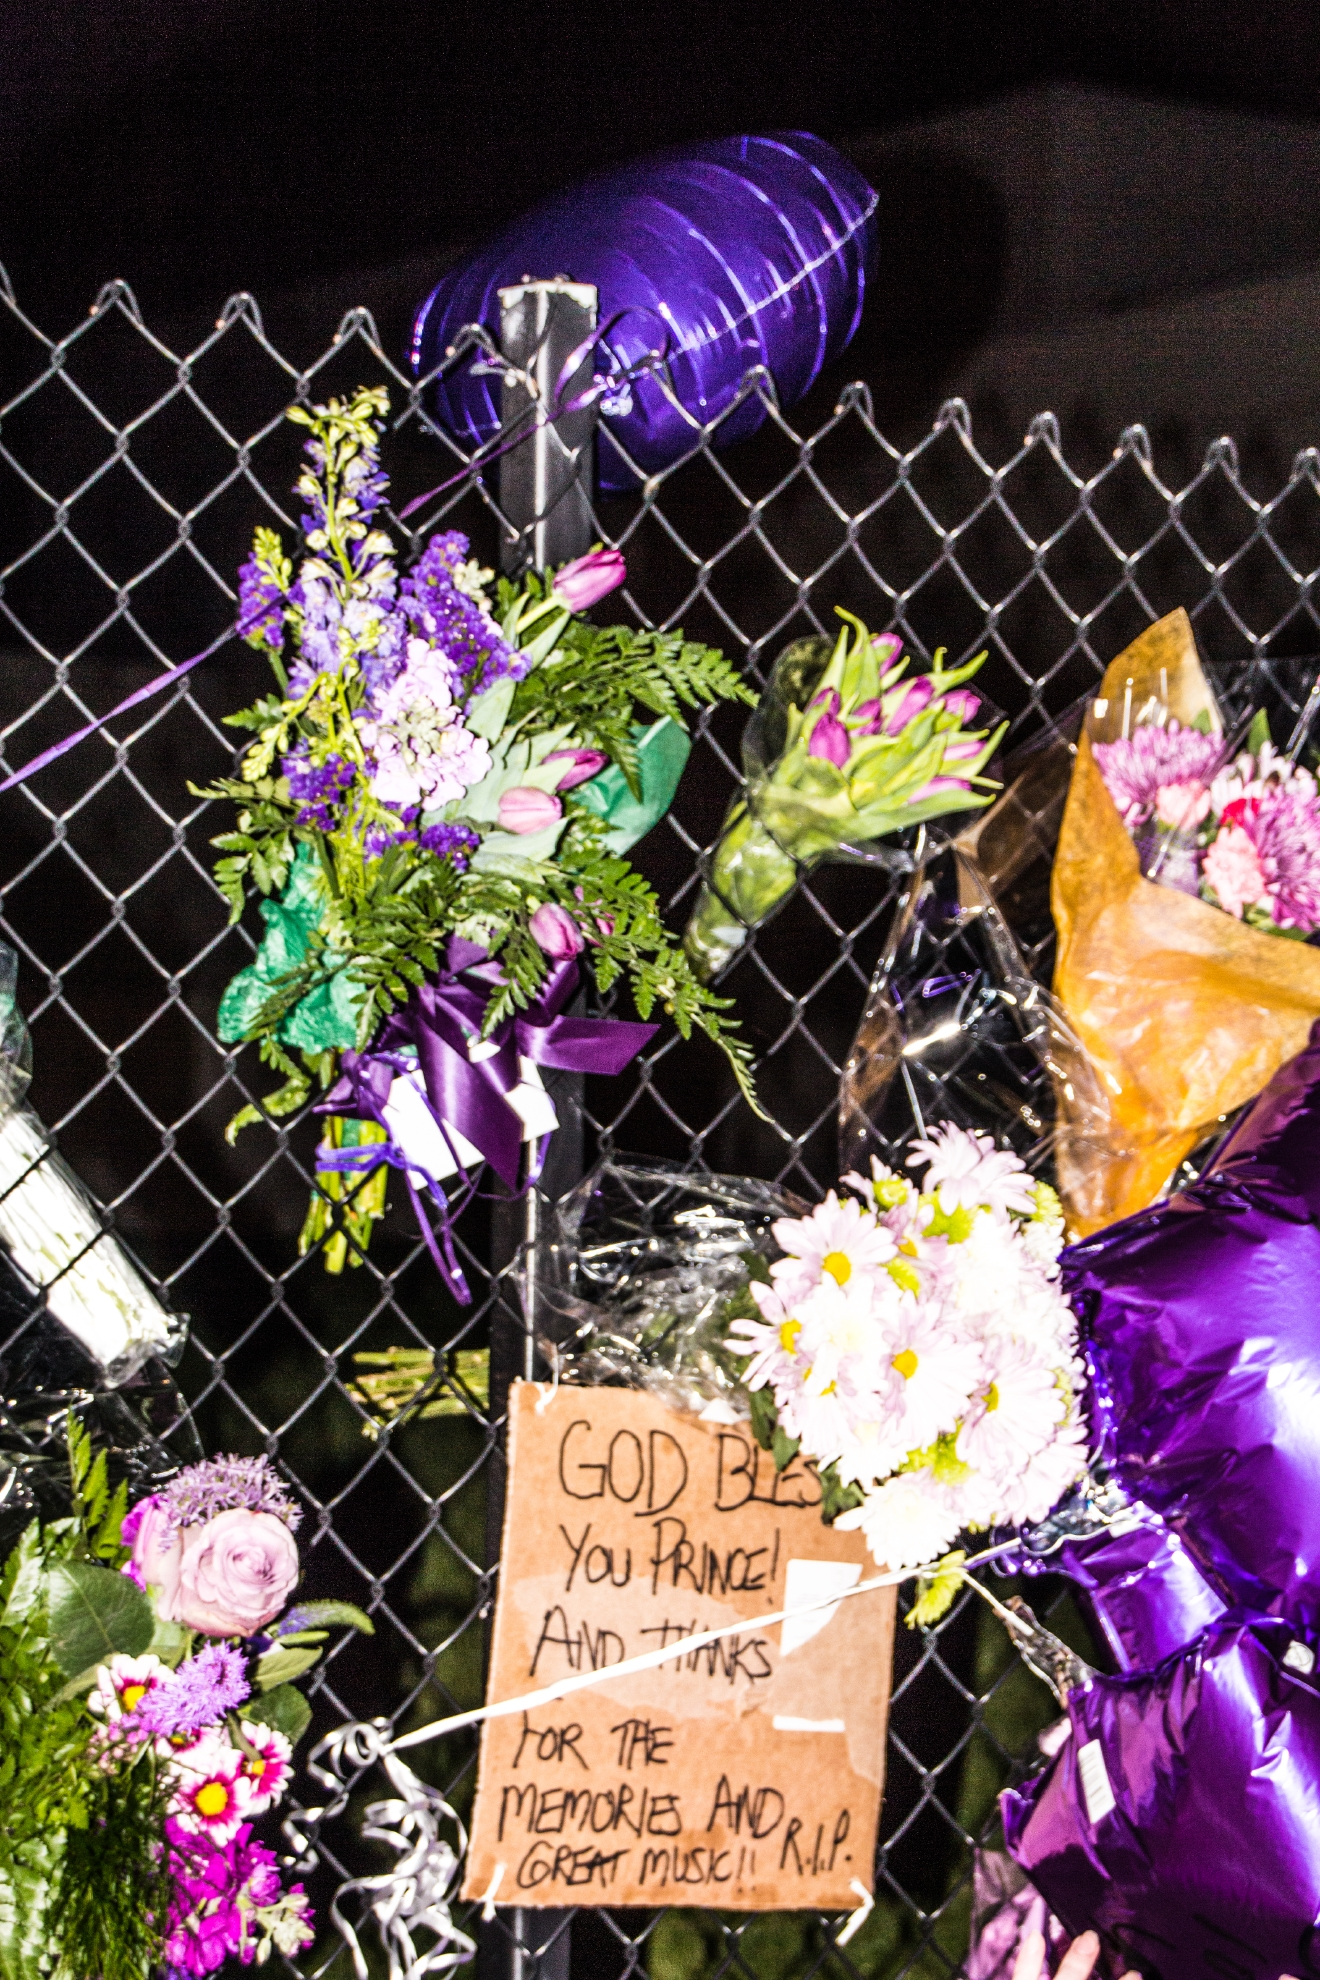 Fans pay tribute to Prince outside his Paisley Park estate in Chanhassen, Minnesota, following his sudden death on (21April16)  Featuring: Atmosphere Where: Chanhassen, Minnesota, United States When: 21 Apr 2016 Credit: Patrick E. Frost/WENN.com